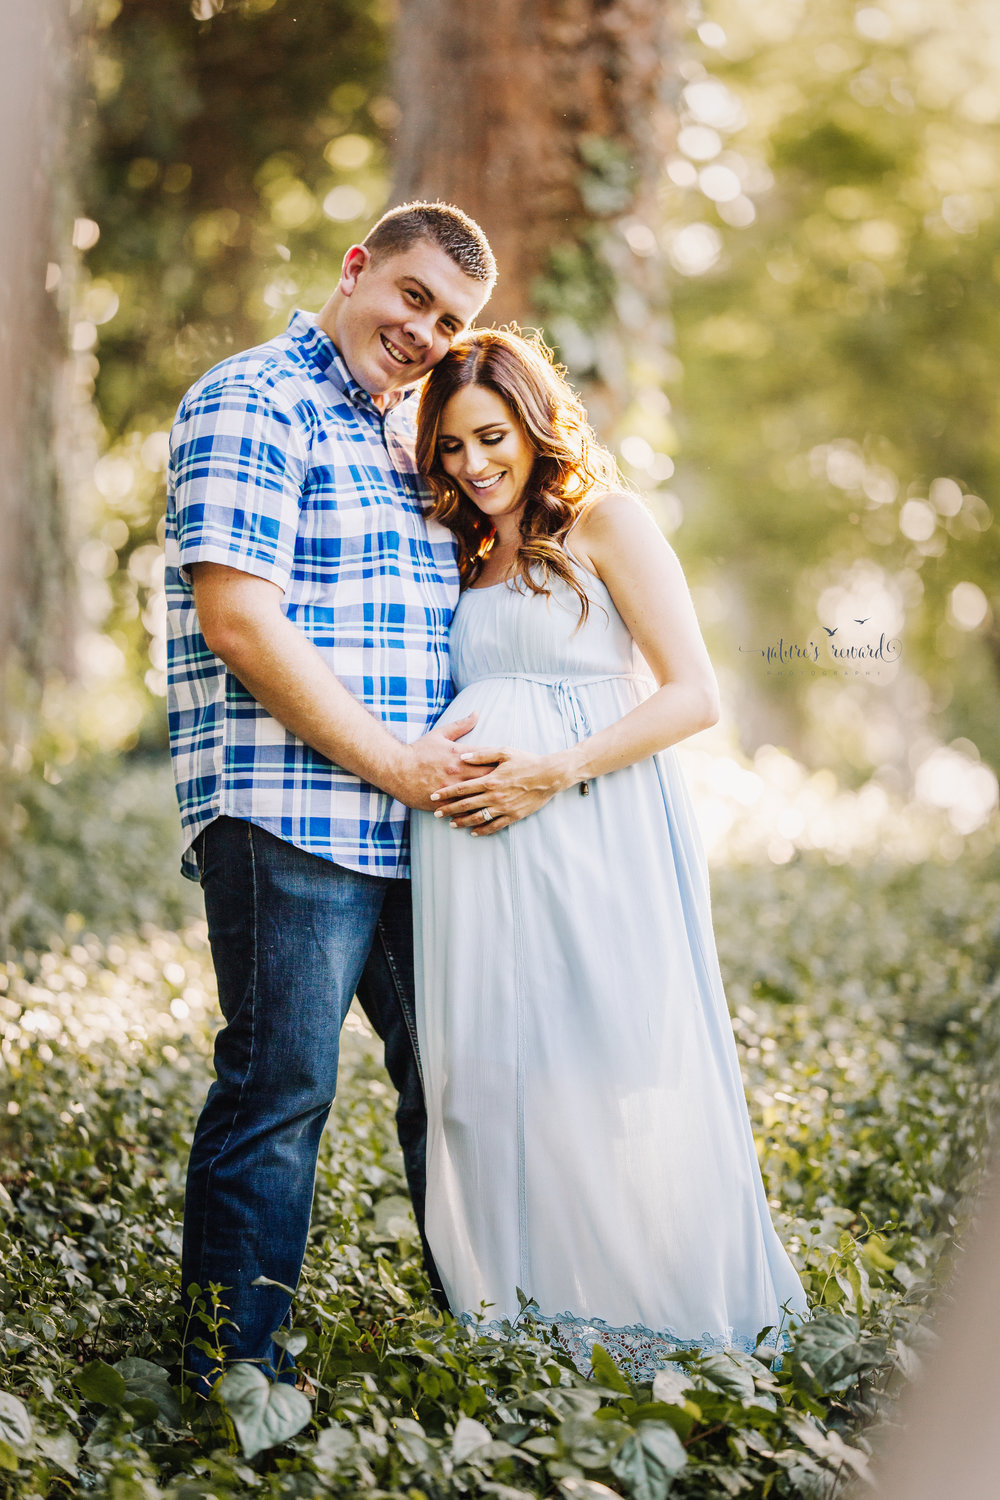 Beautiful expecting mother in a blue maternity gown with her husband in jeans and a blue plaid button down shirt in beautiful light in a park setting in this maternity portrait taken by Nature's Reward Photography.